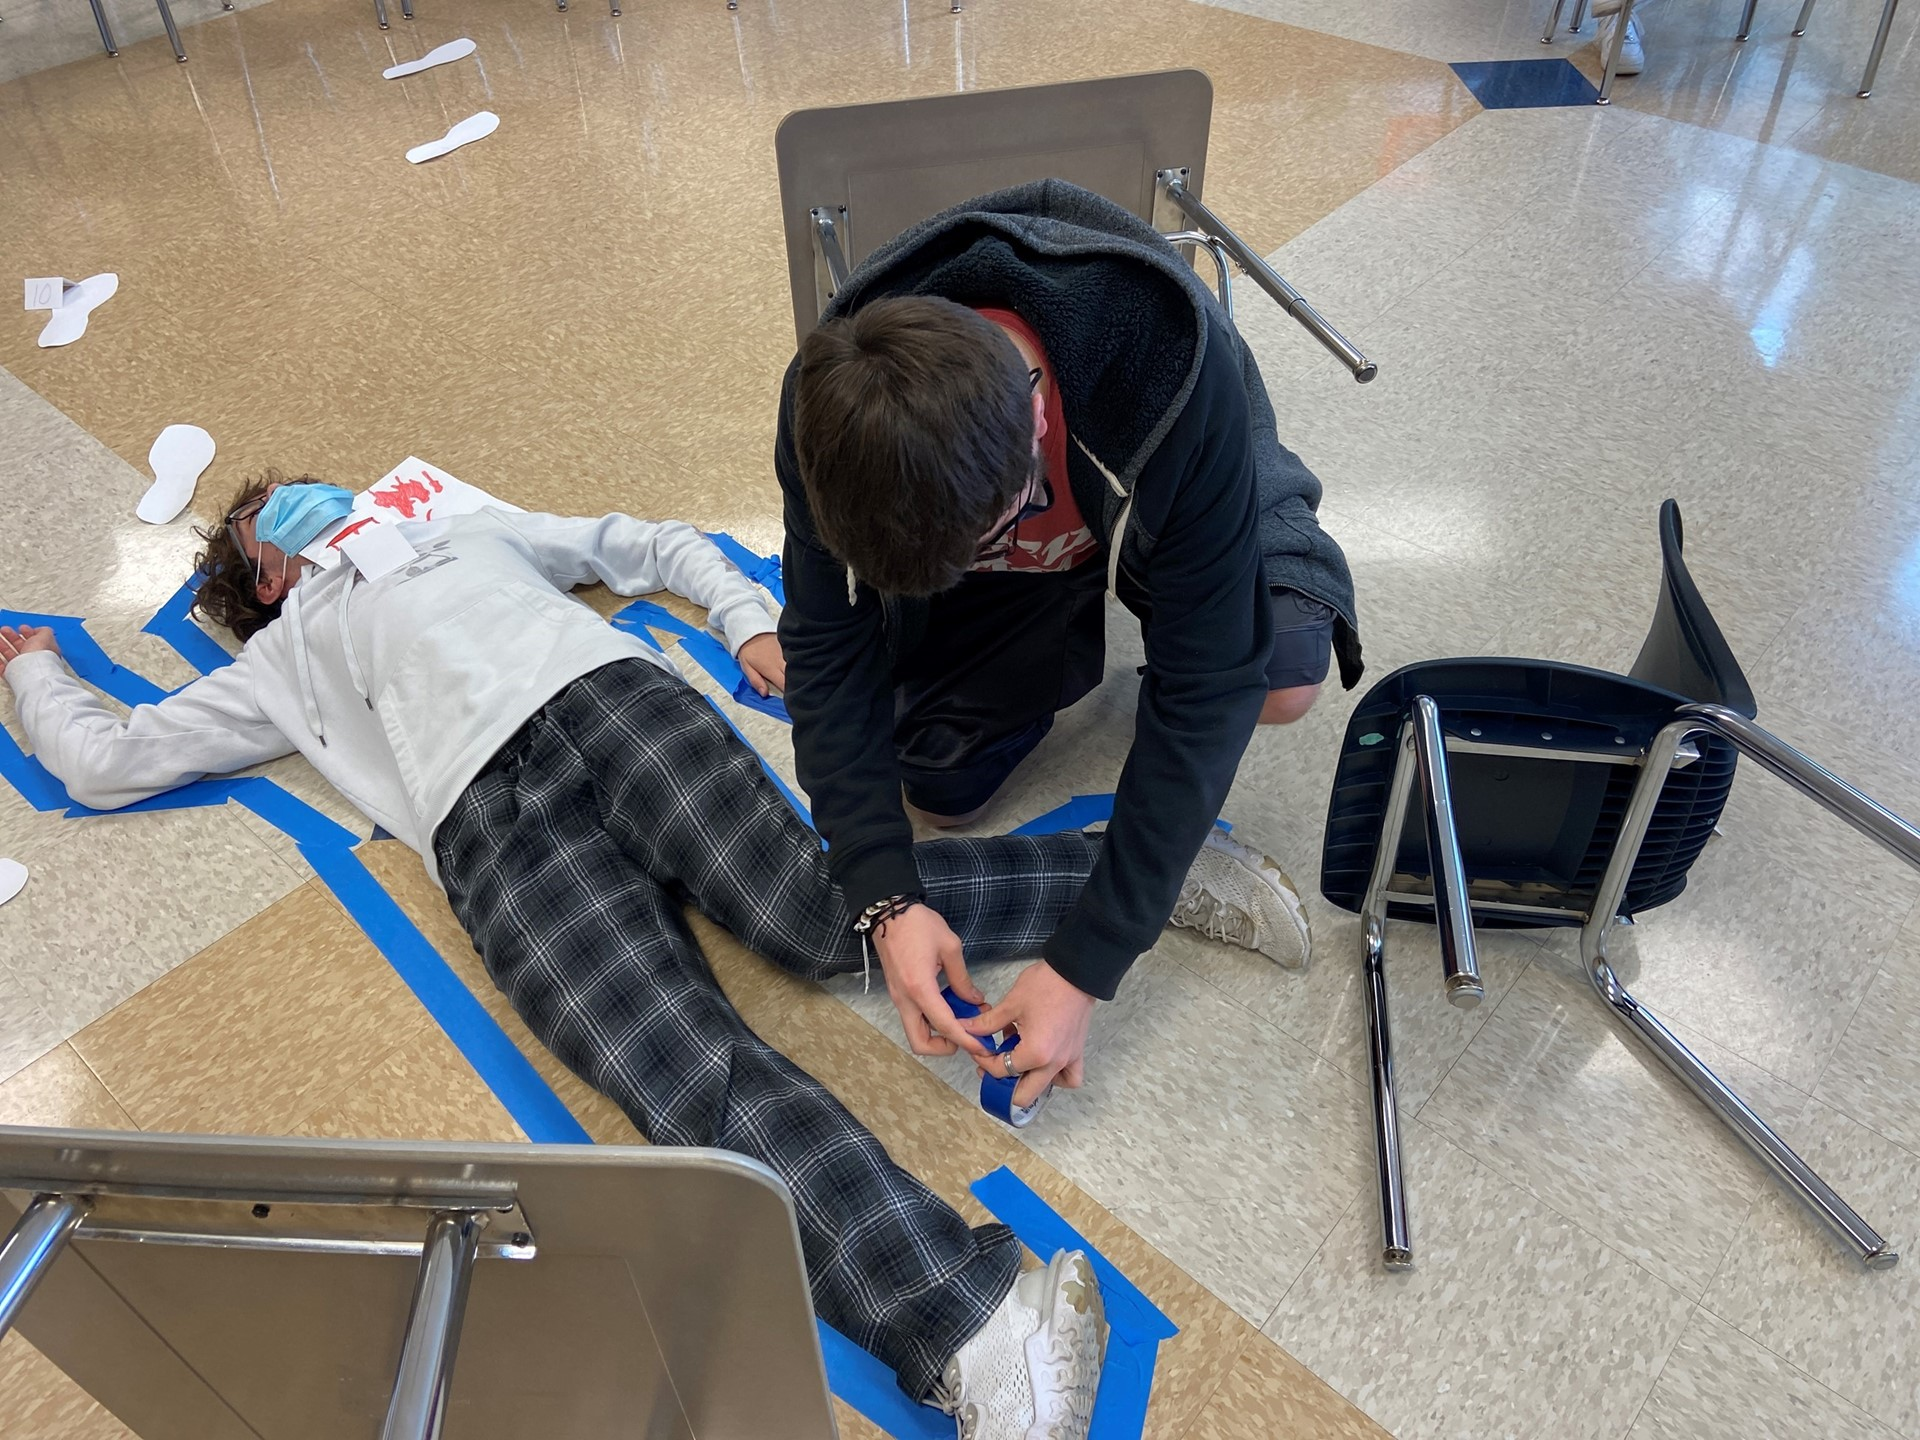 Students create a tape outline of a person in class.